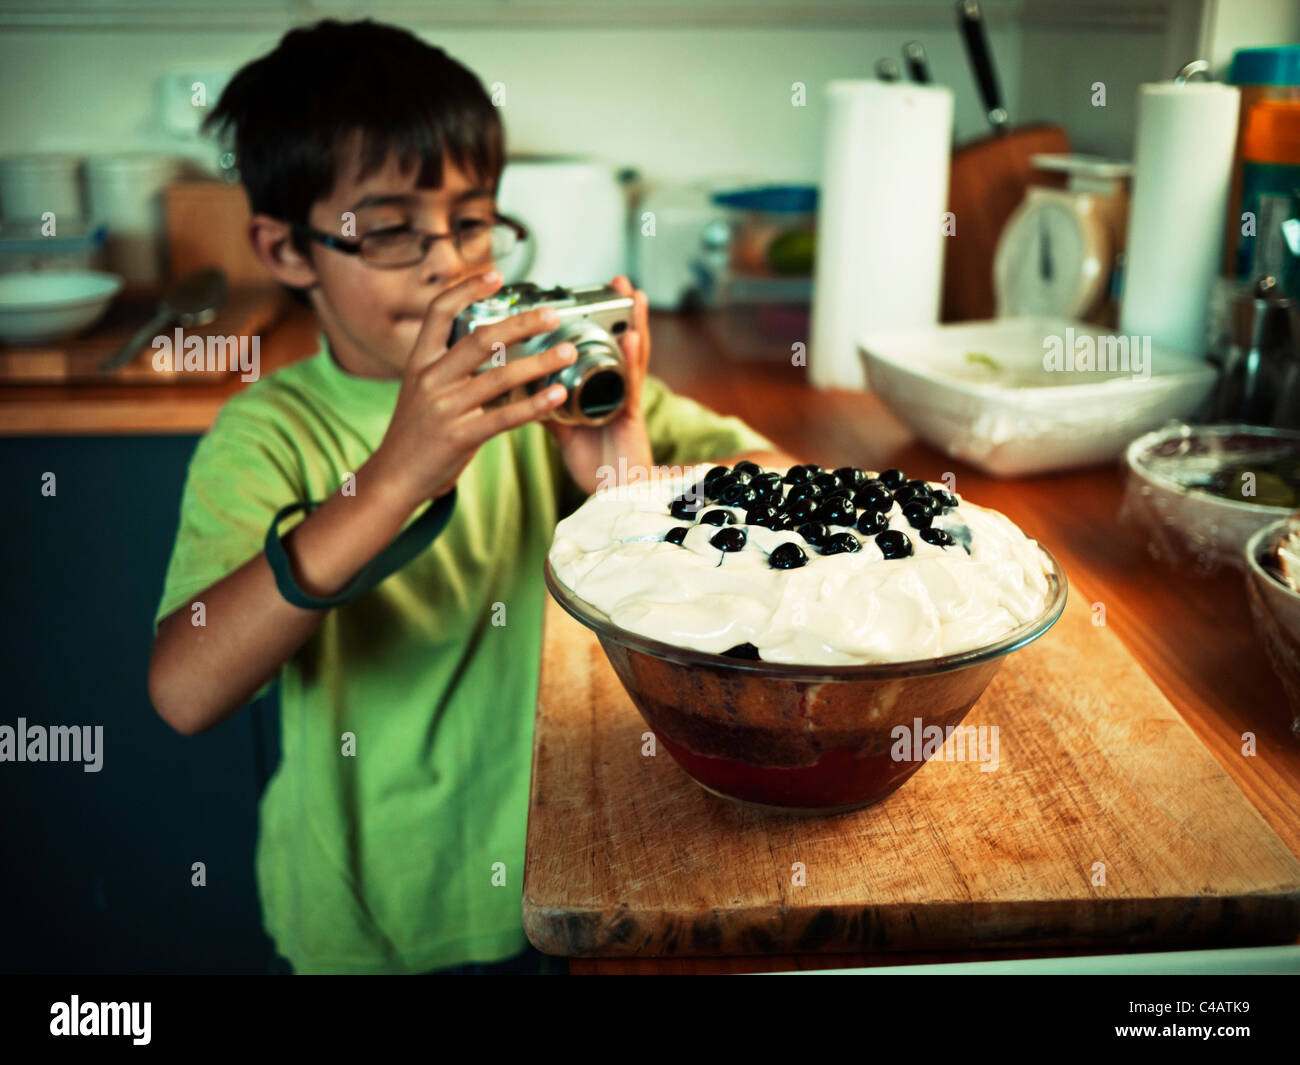 Boy takes picture of homemade trifle. - Stock Image